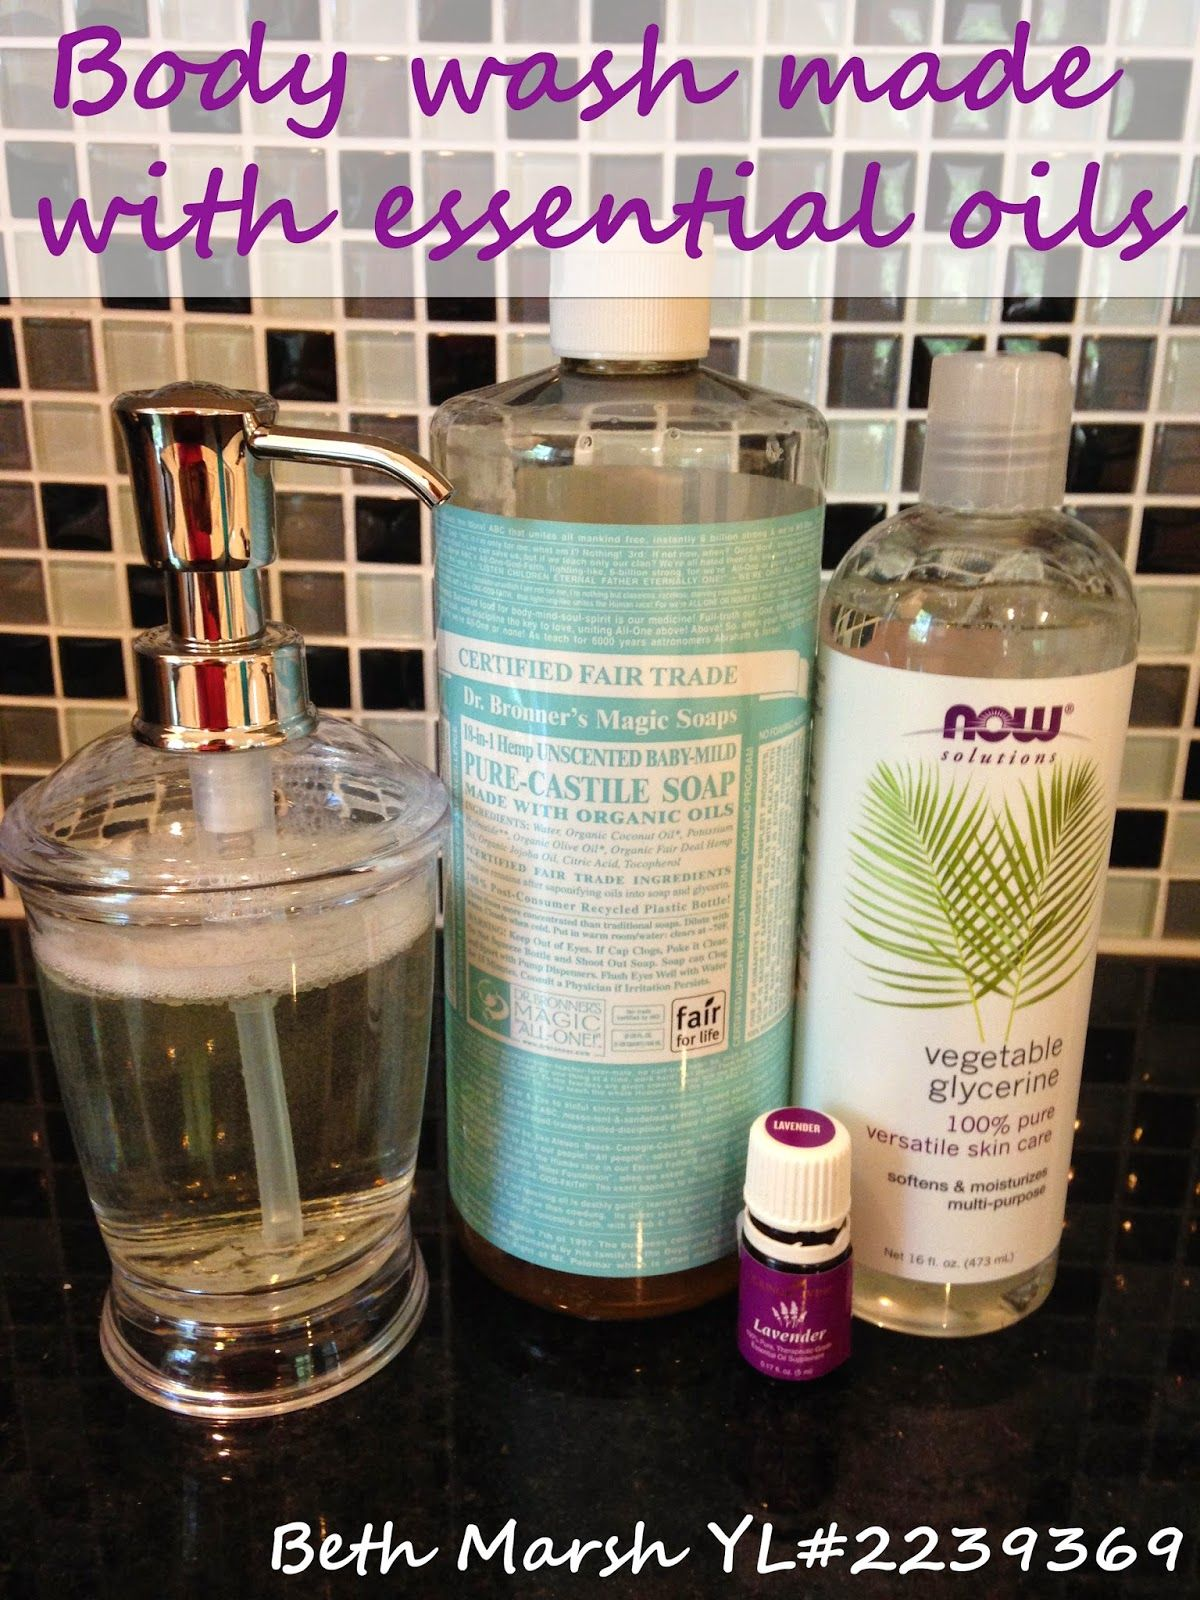 Diy All Natural Body Wash Made With Essential Oils Great For